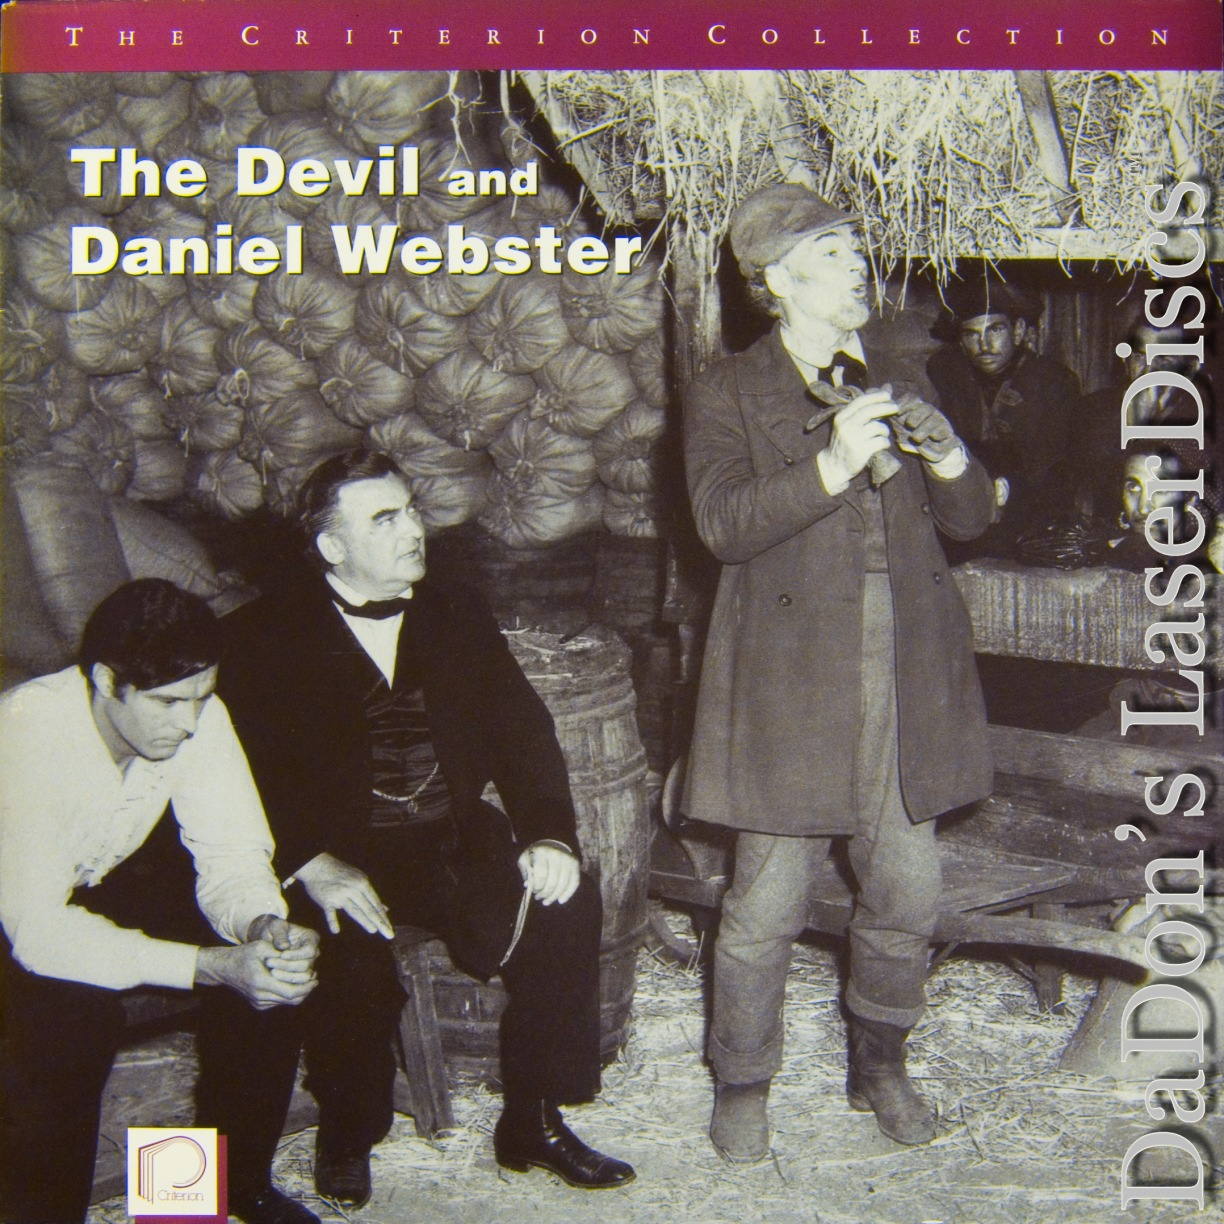 a review of the play the devil and daniel webster The devil and daniel webster runs through april 1st at seattle// children's  theatre for tickets call (206) 441-3322, or visit wwwsctorg.